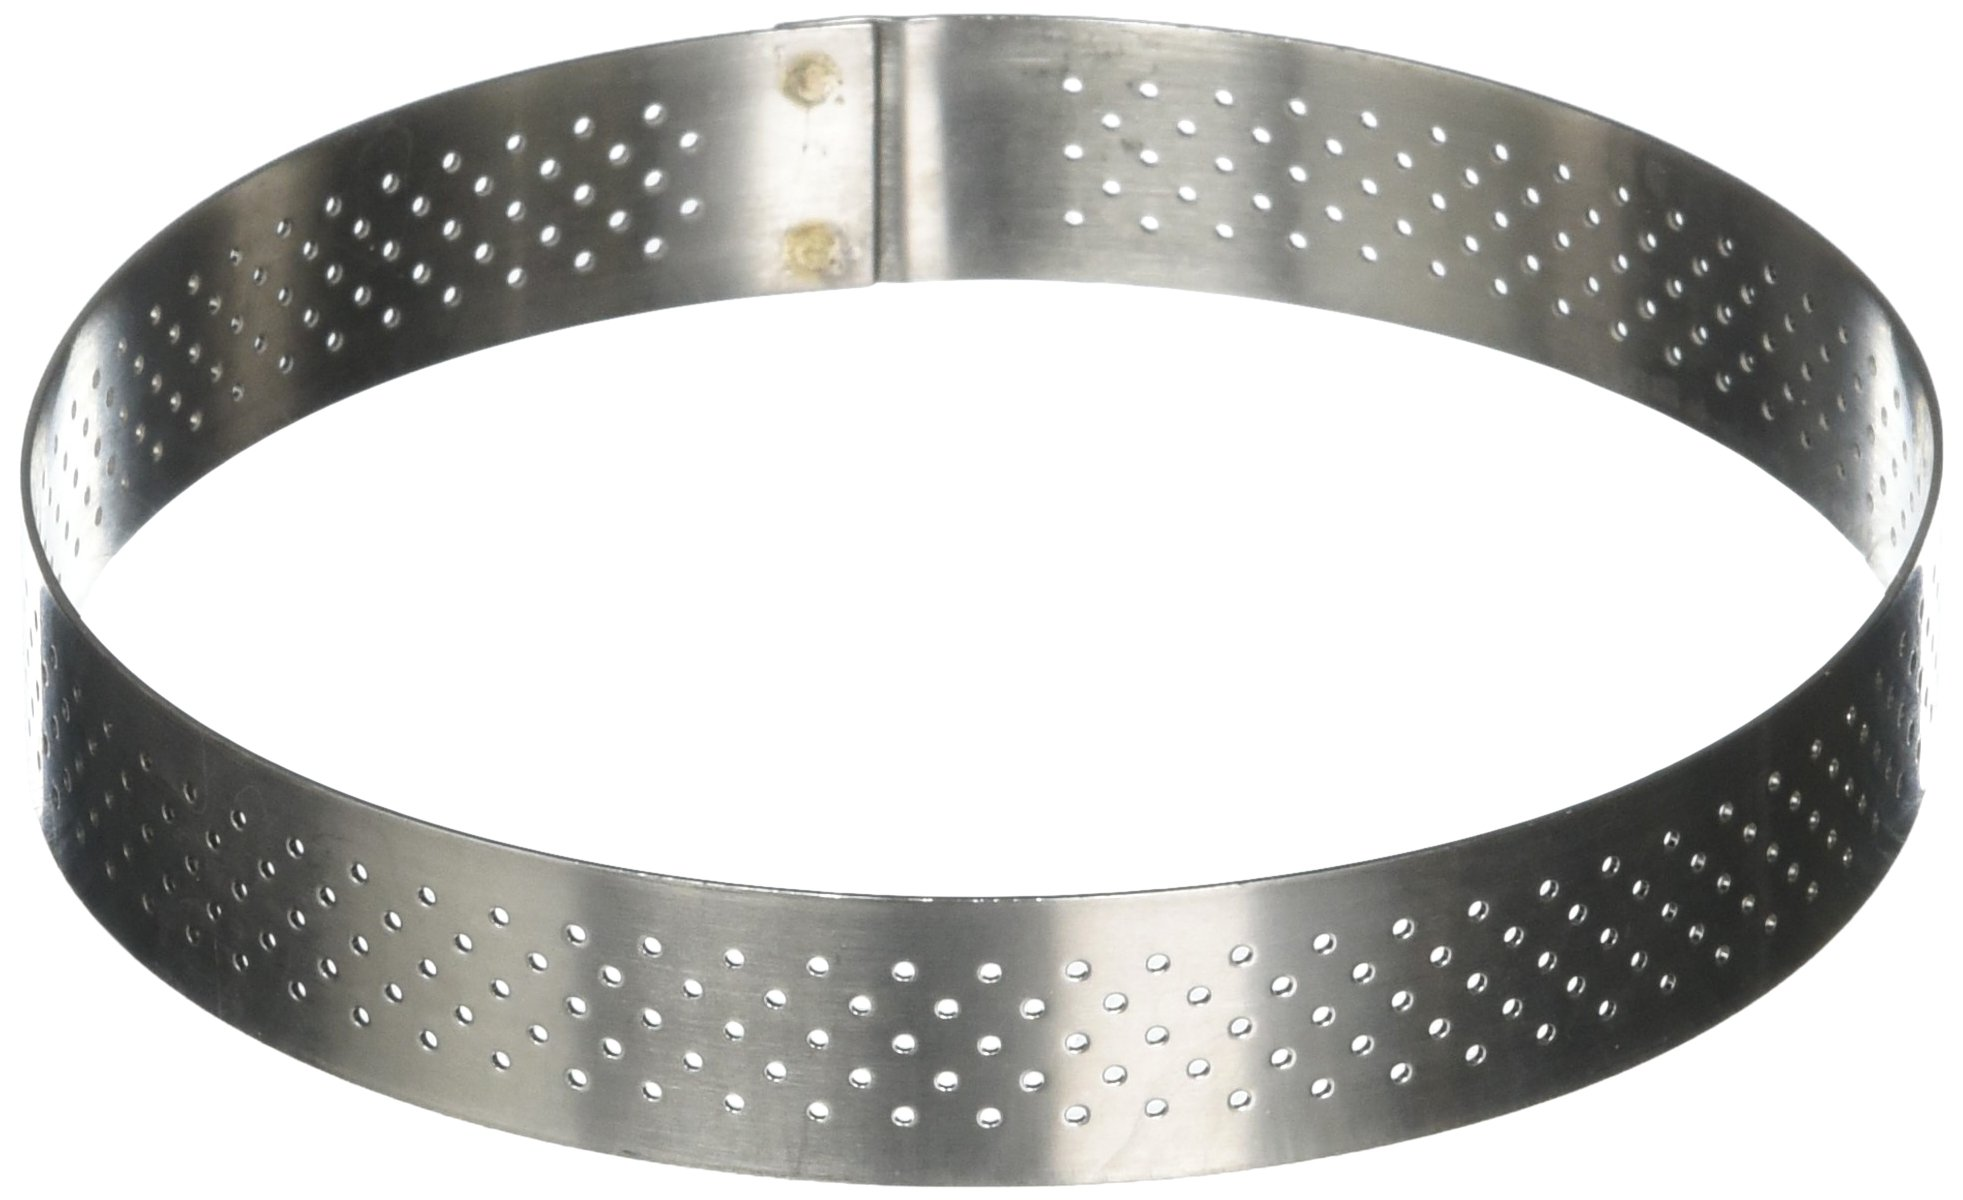 PERFORATED TART RING, Round, in Stainless Steel, 0.75-Inch high O 5-Inch